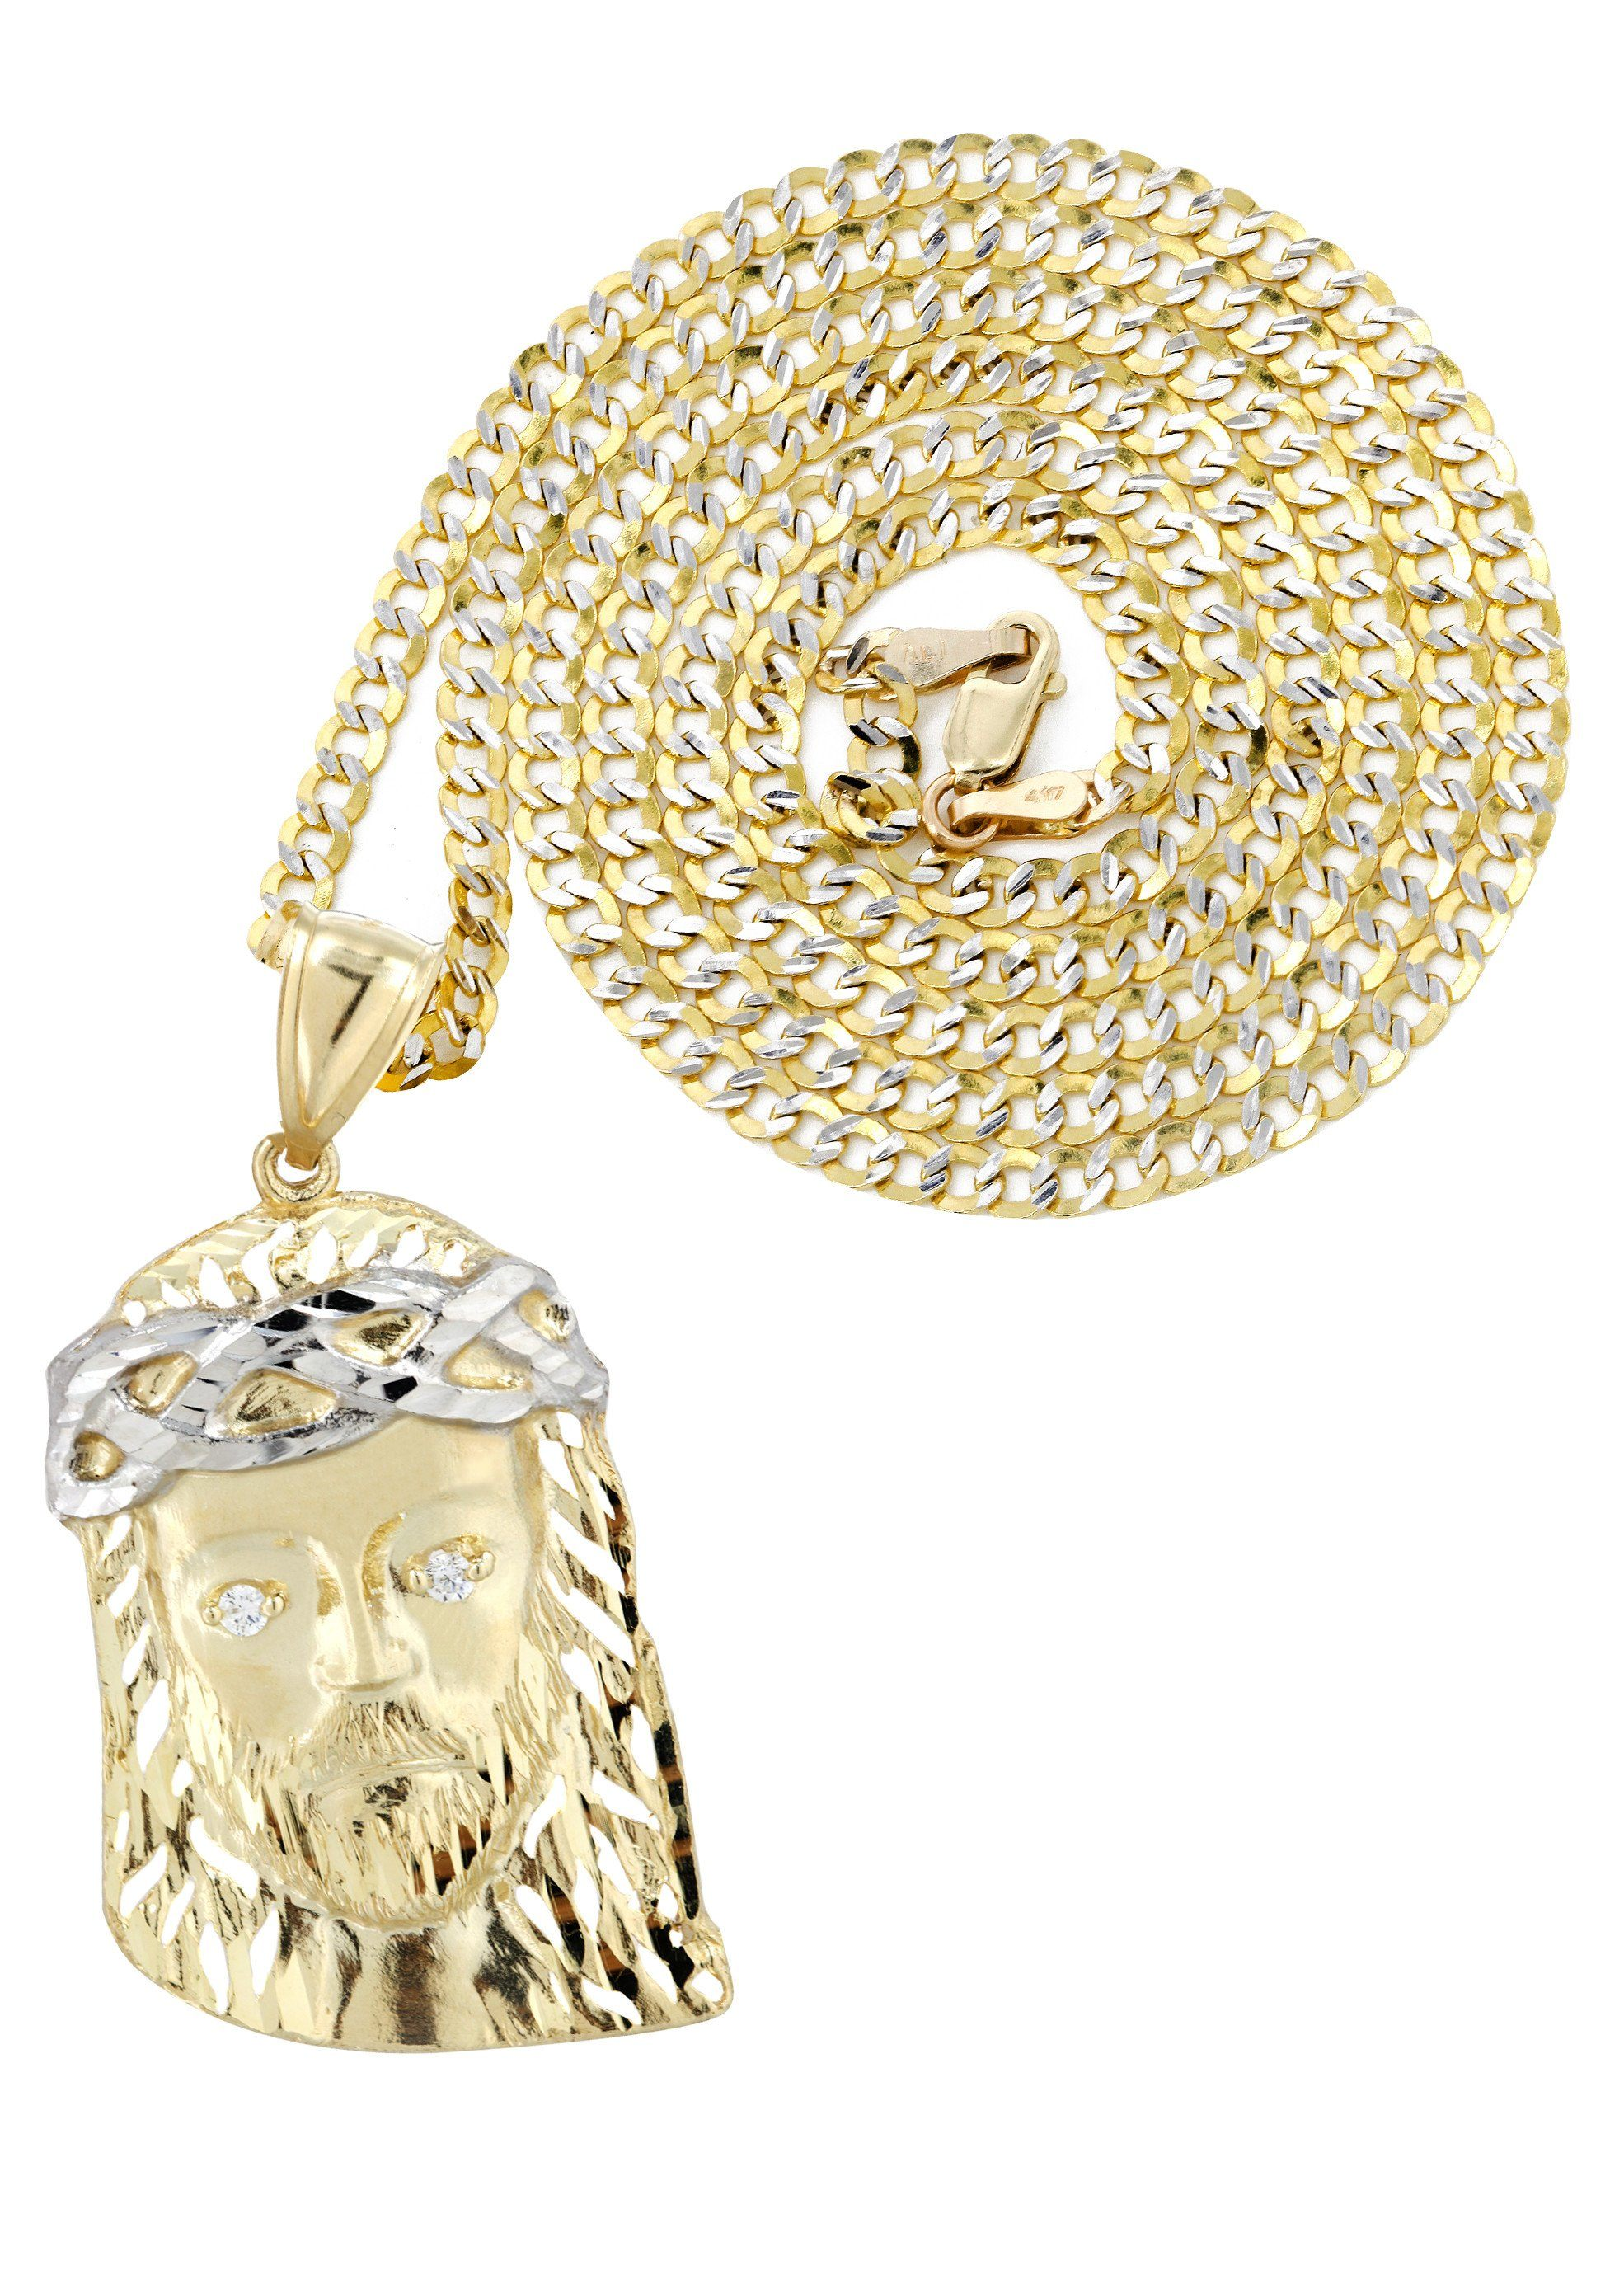 10K Yellow Gold Pave Cuban Chain & Jesus Piece Chain / Appx. 12.3 Grams